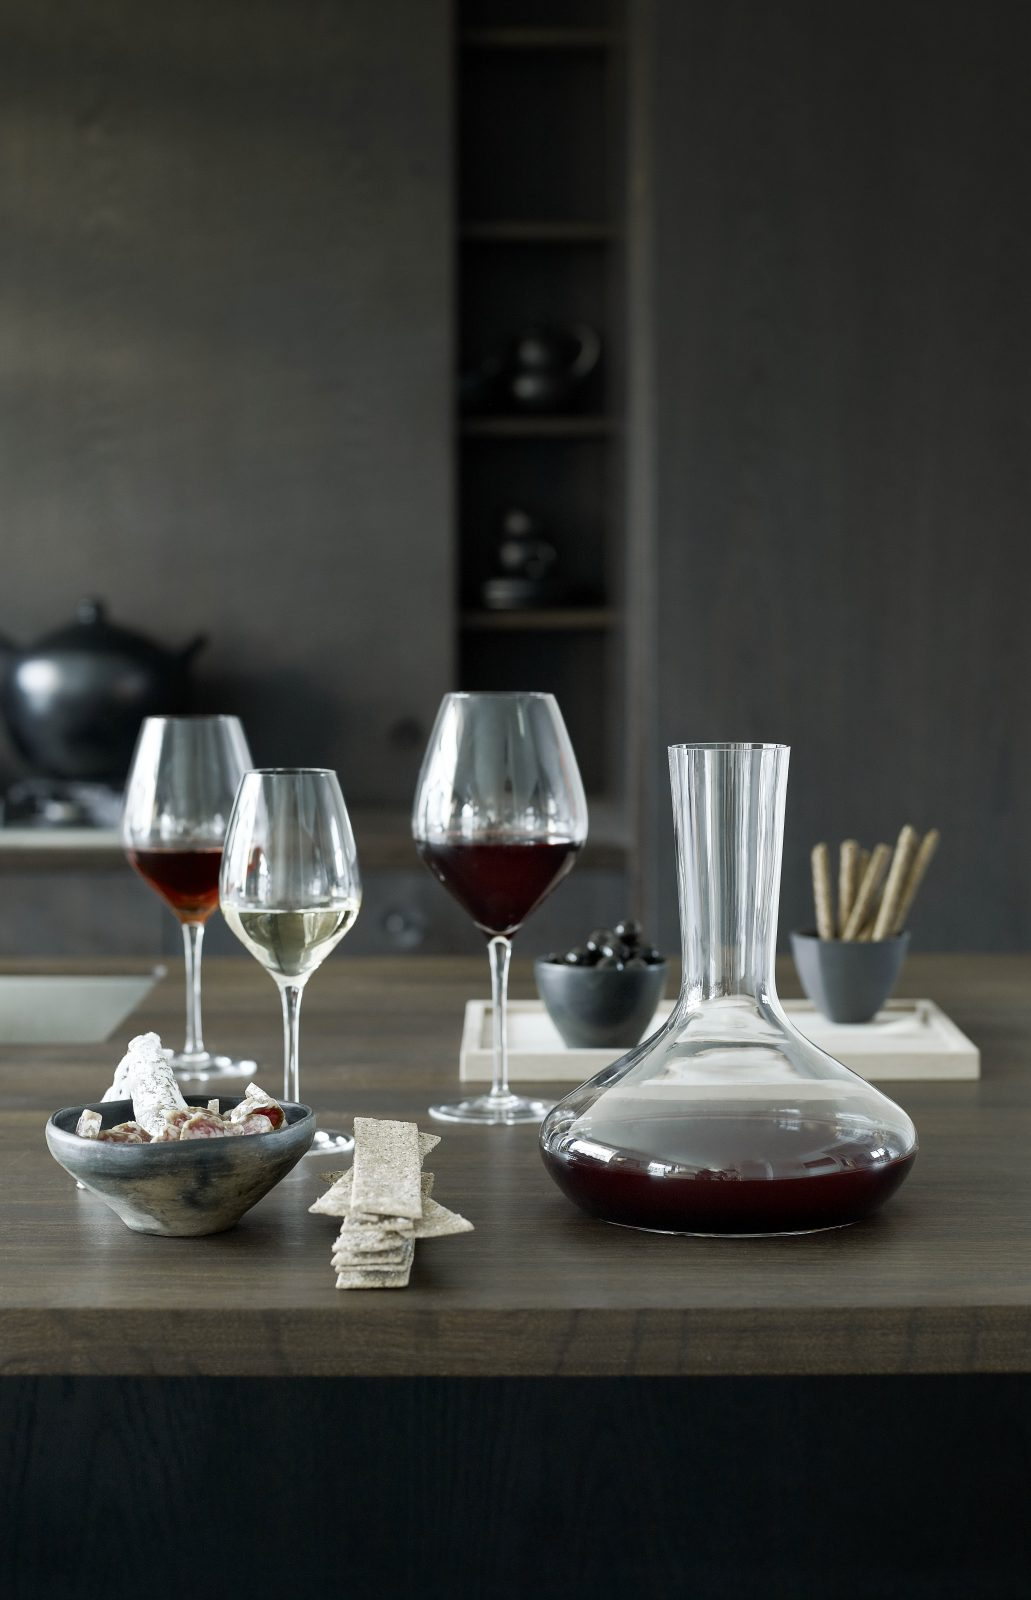 A Carafe That Is A Blind Glass holmegaard cabernet wine carafe